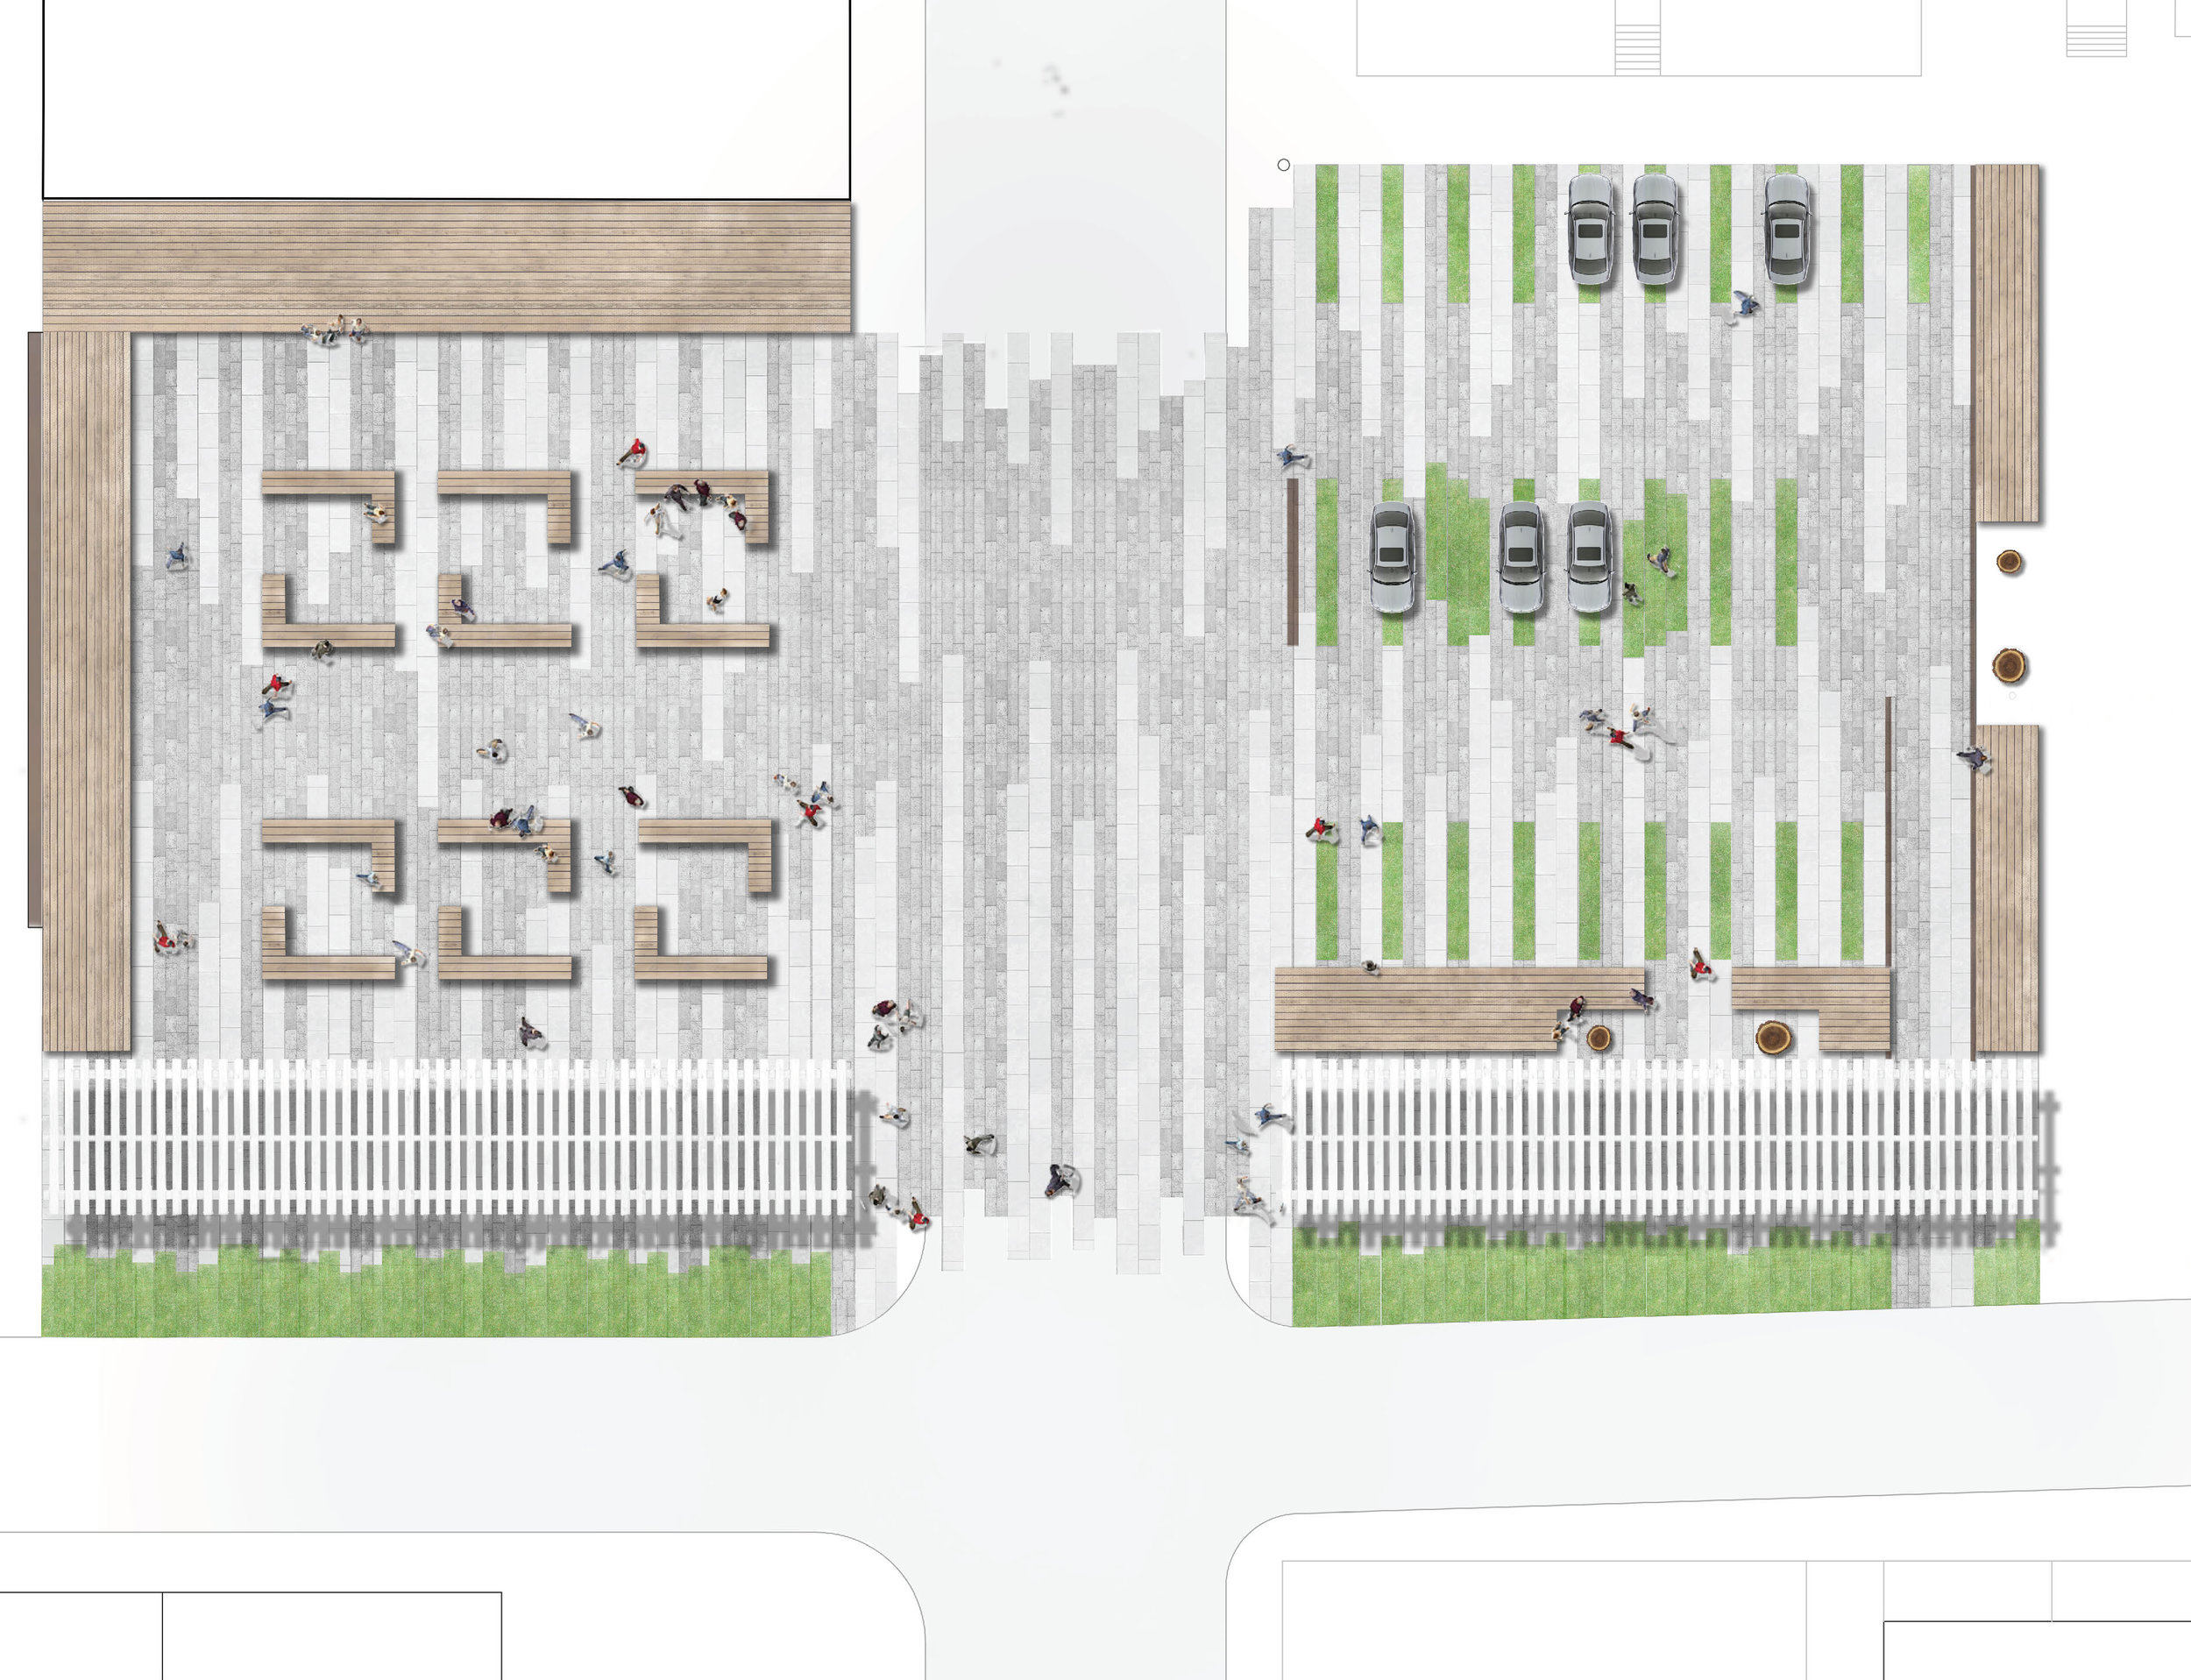 Hickory Lots proposes a public space that defines a boundary, can accommodate parking if needed, as well as commemorates the recent loss of four mature trees